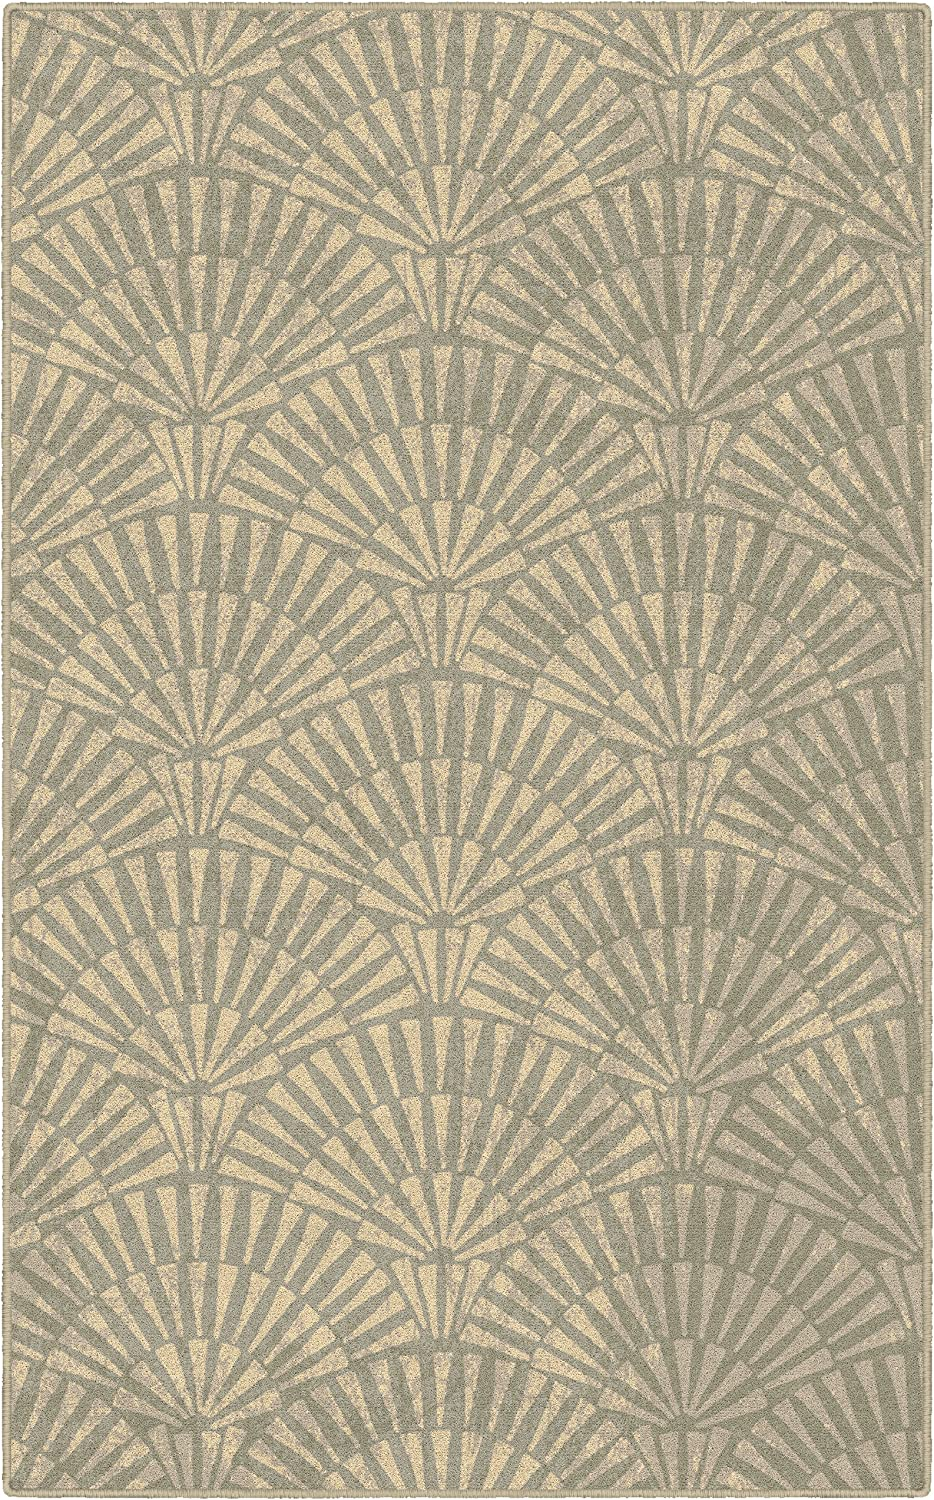 Brumlow MILLS Art Deco Home Indoor Area Rug with Contemporary Print Pattern for Living Room Decor, Dining Room, Kitchen Rug, or Bedroom, 2'6